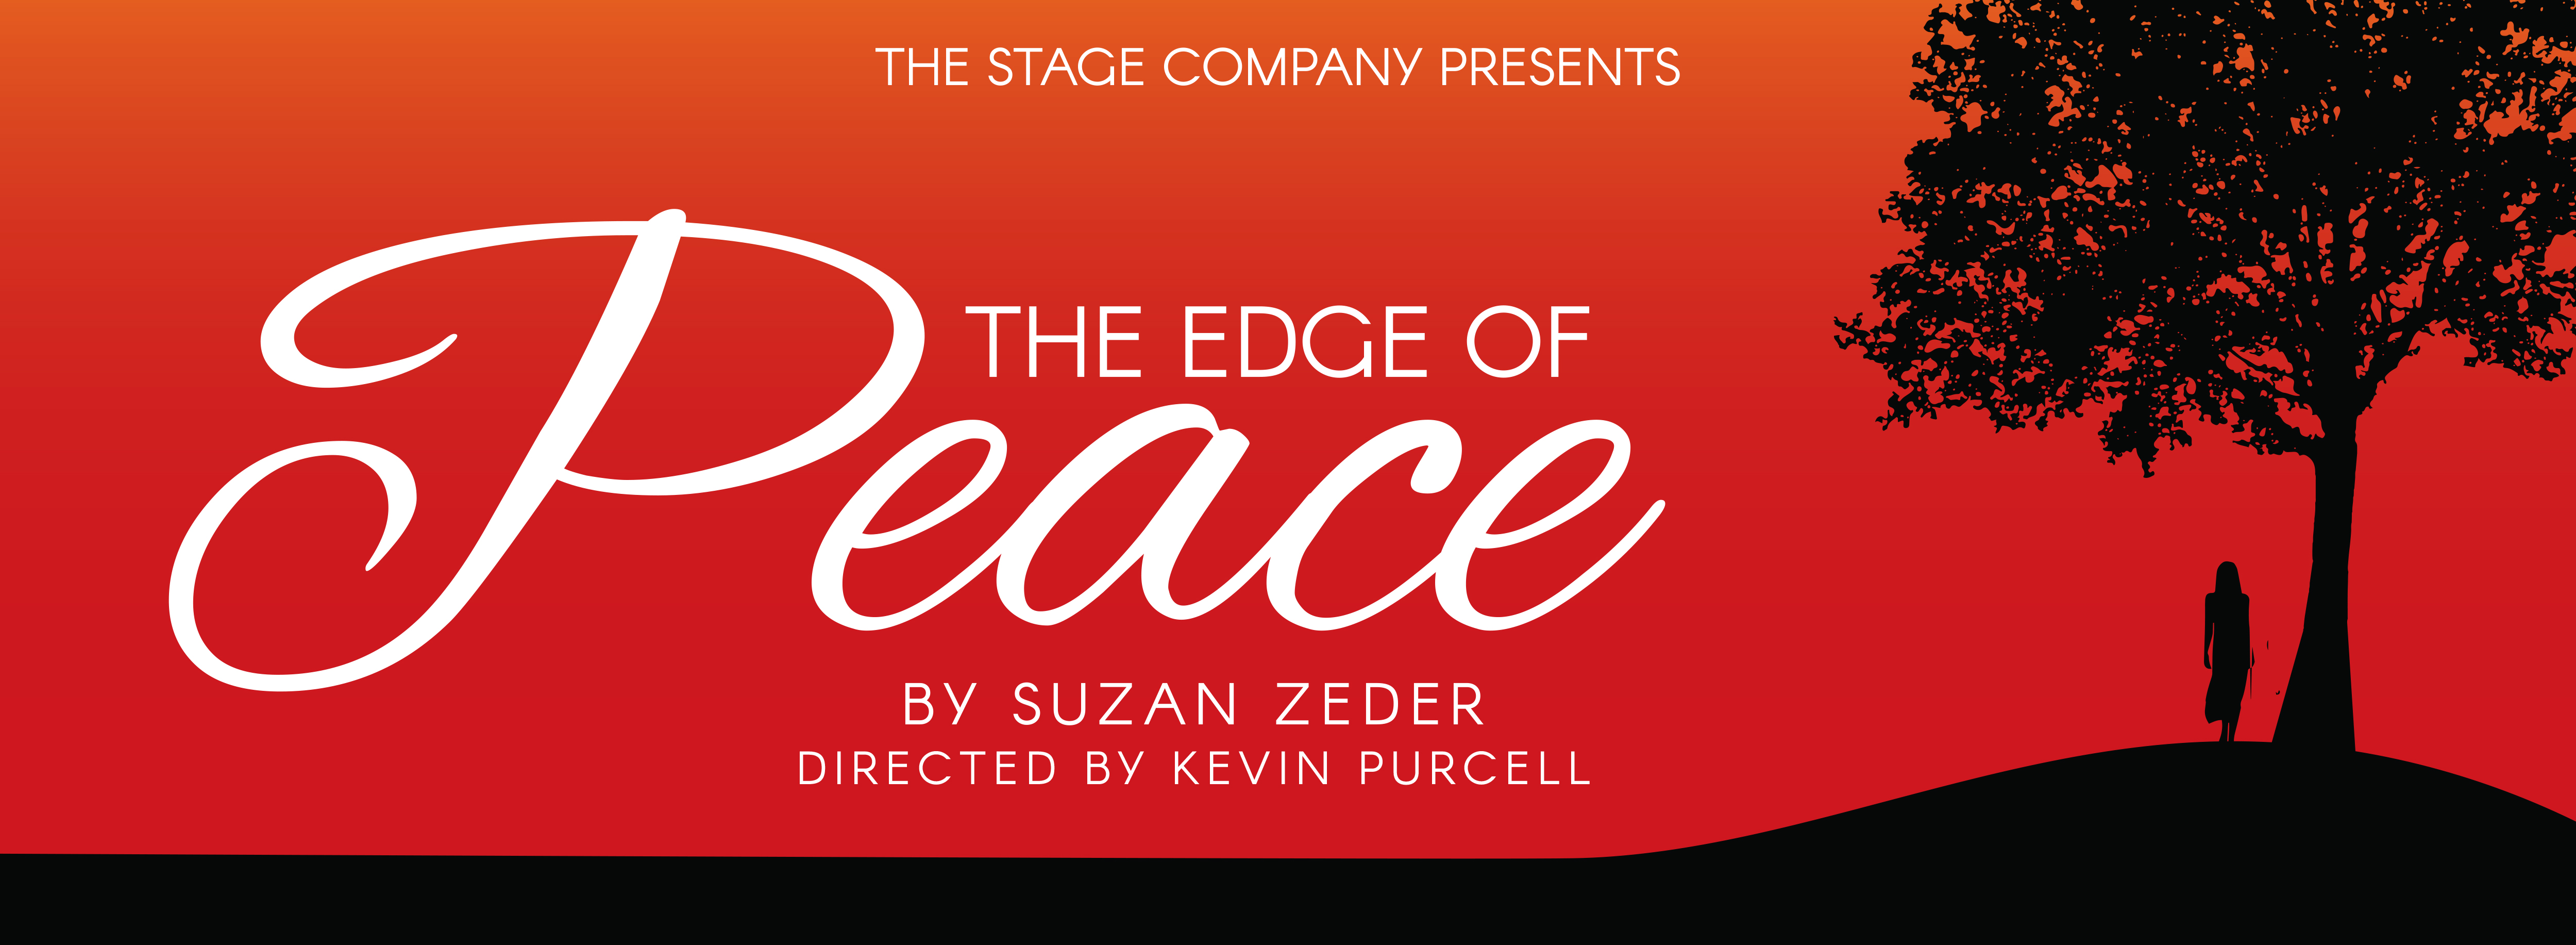 The Edge of Peace by Suzan Zeder